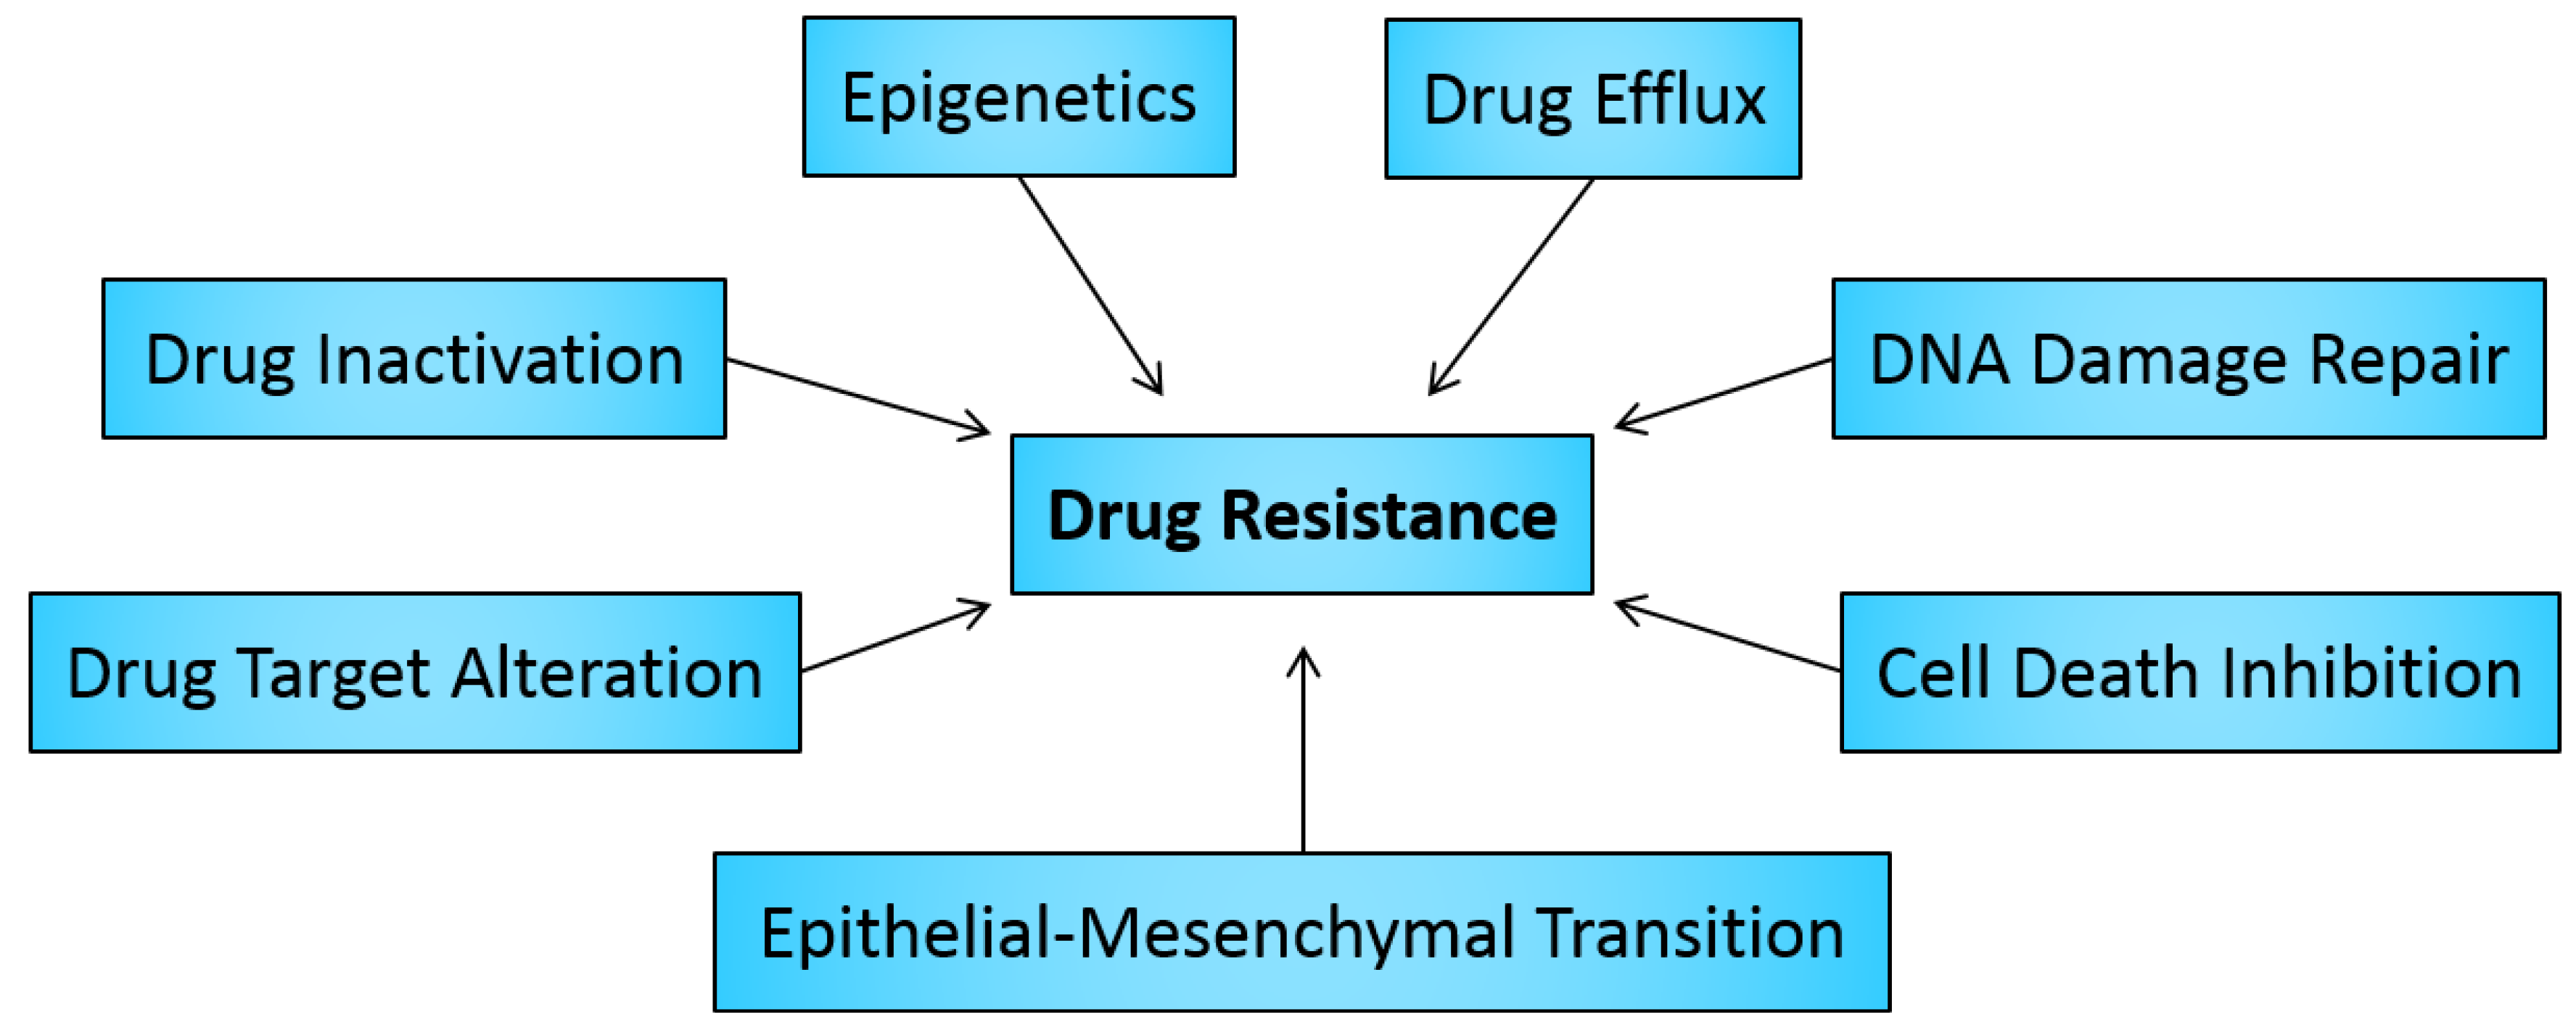 Overview of antibiotic resistance